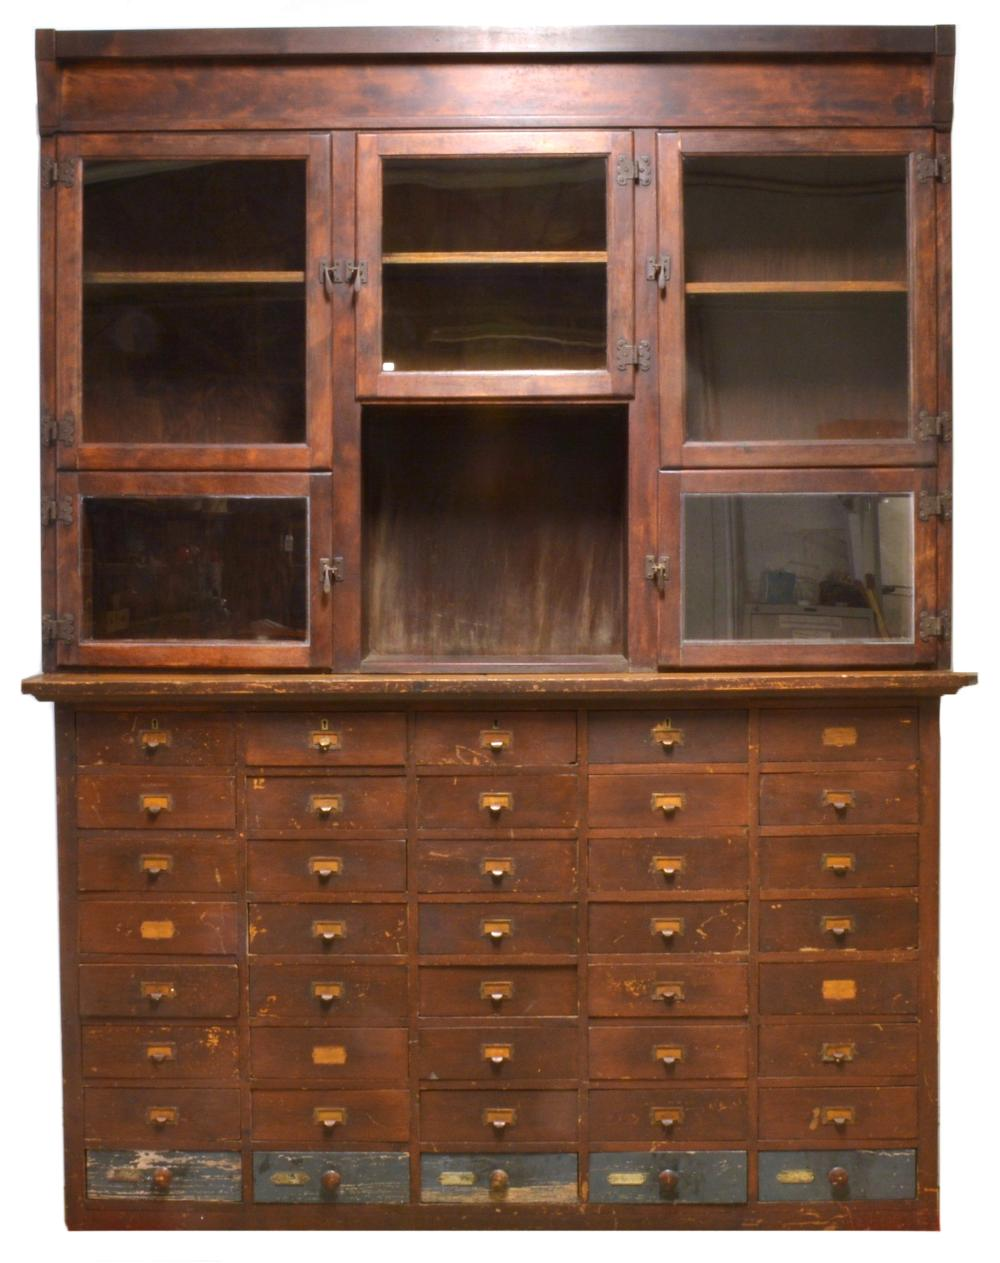 Antique Drugstore Apothecary Cabinet